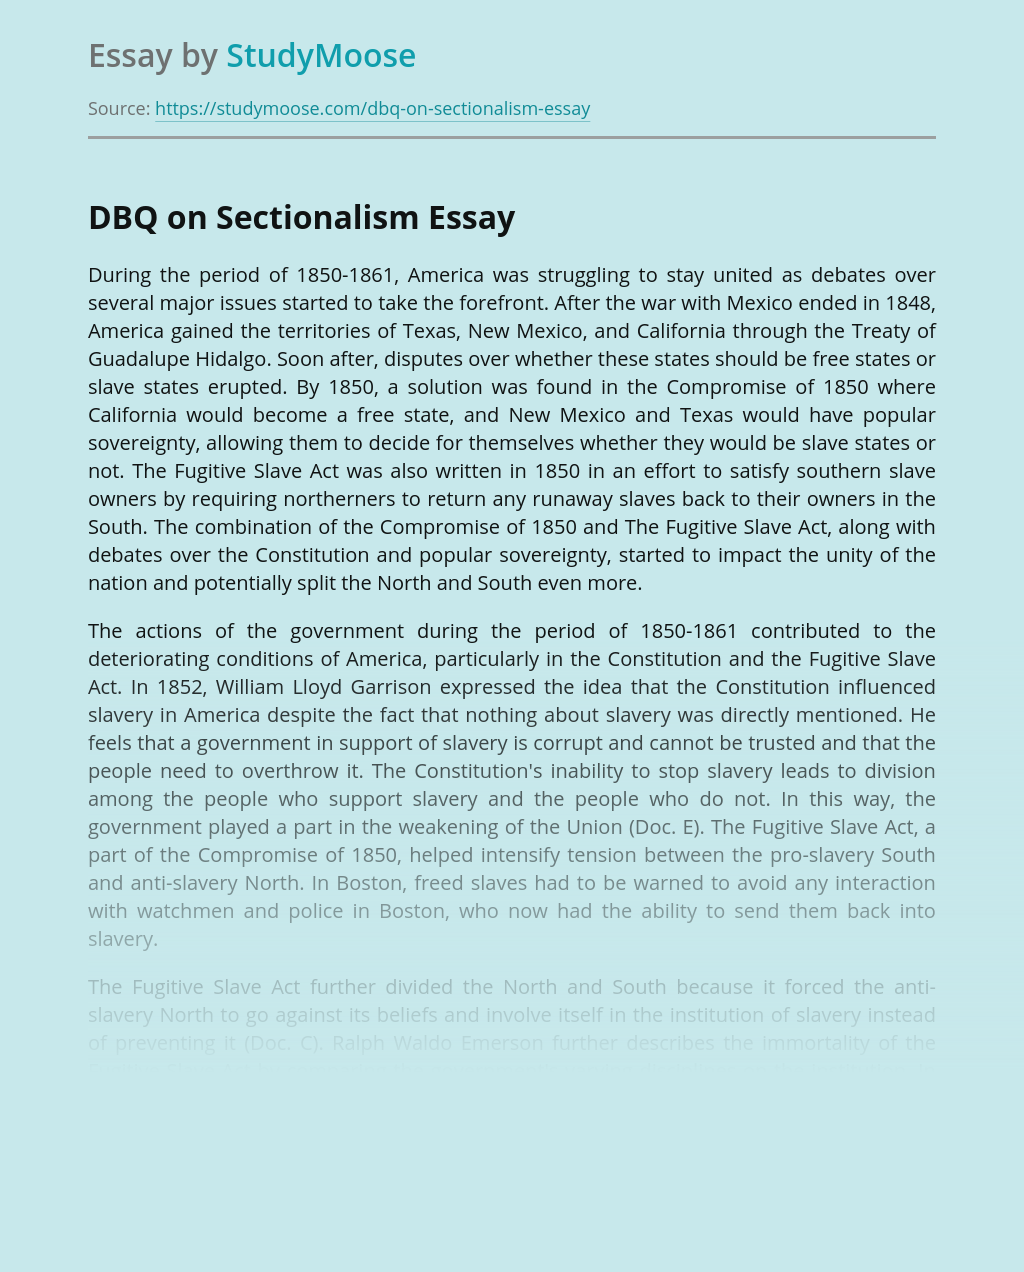 DBQ on Sectionalism